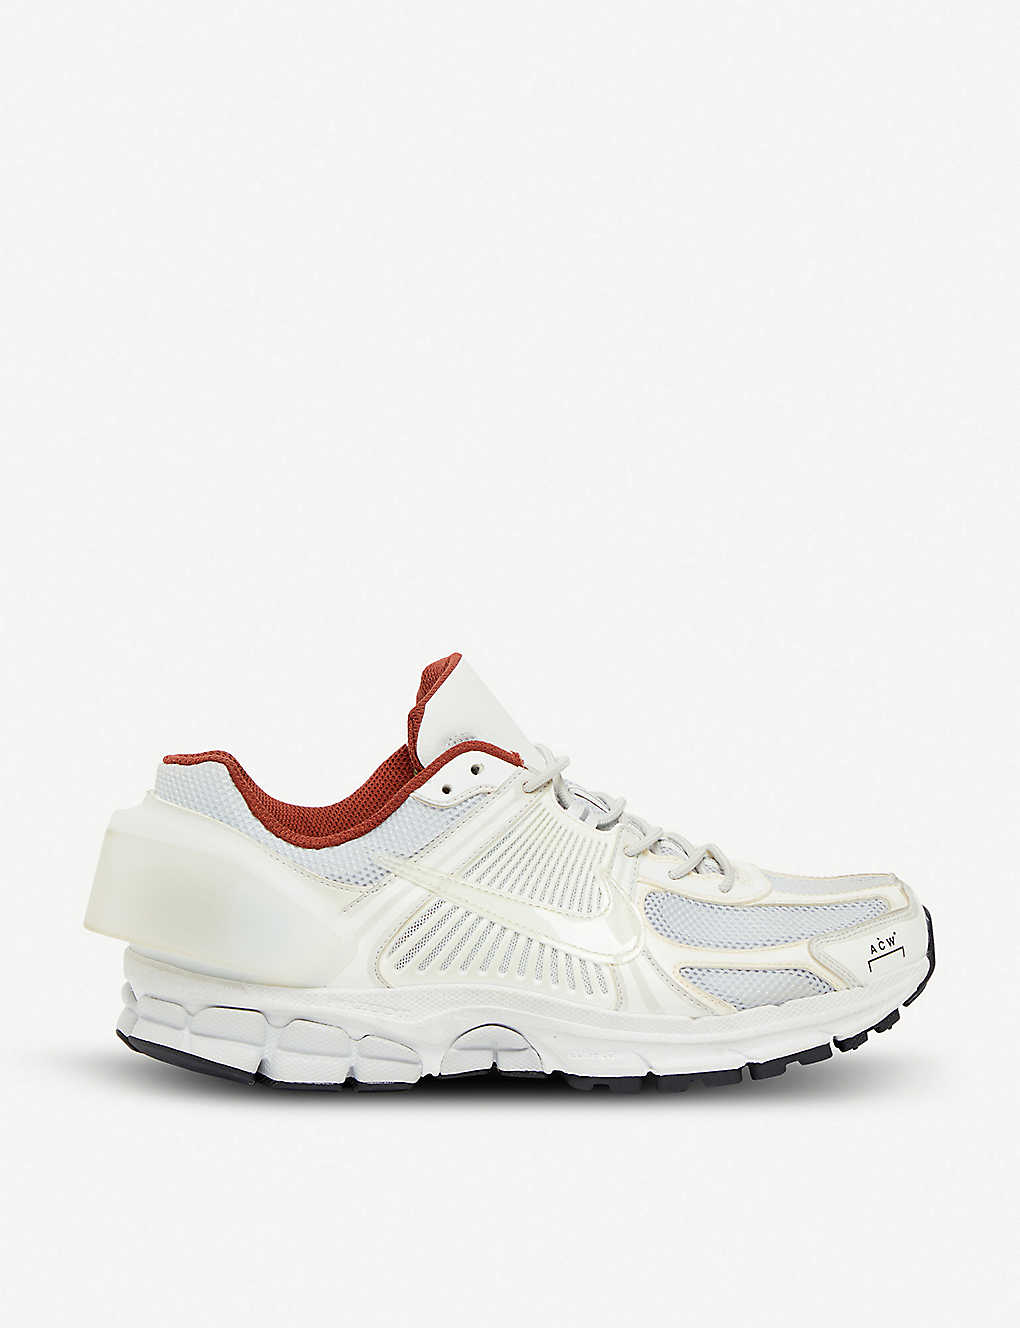 quality design b2305 bc9d6 NIKE Nike x A-COLD-WALL Zoom Vomero +5 leather and mesh trainers